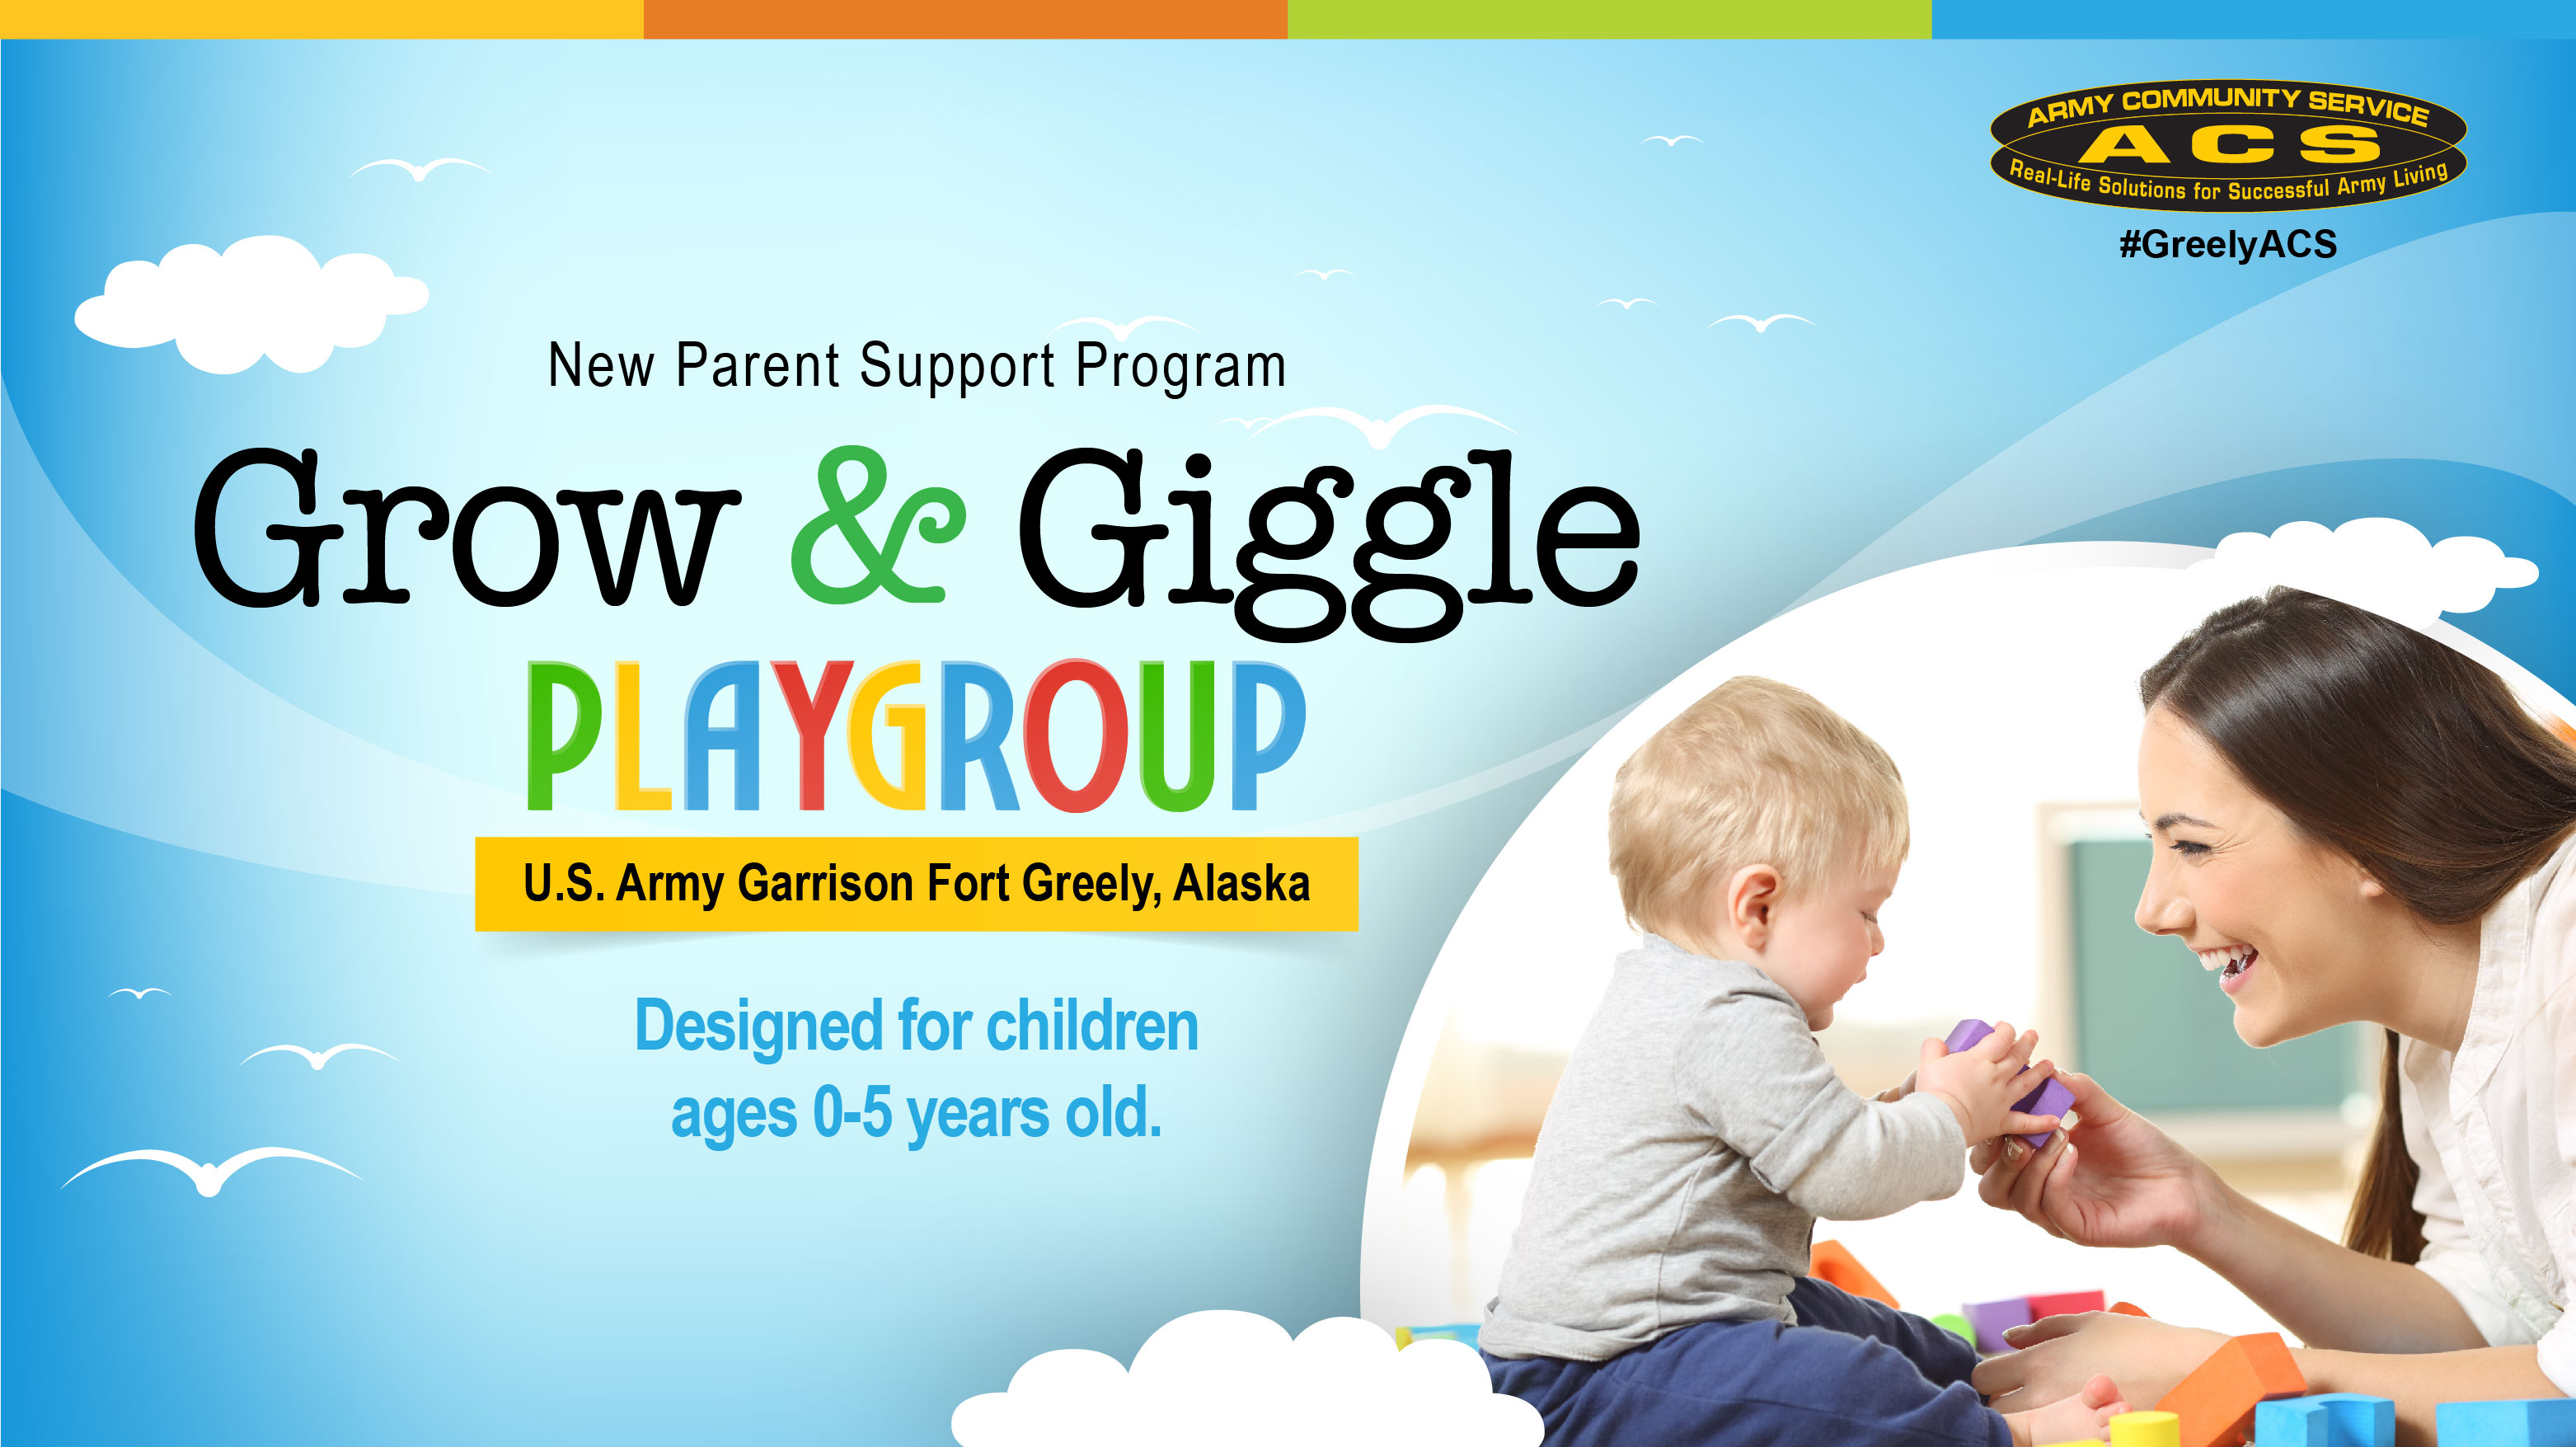 Grow & Giggle Playgroup